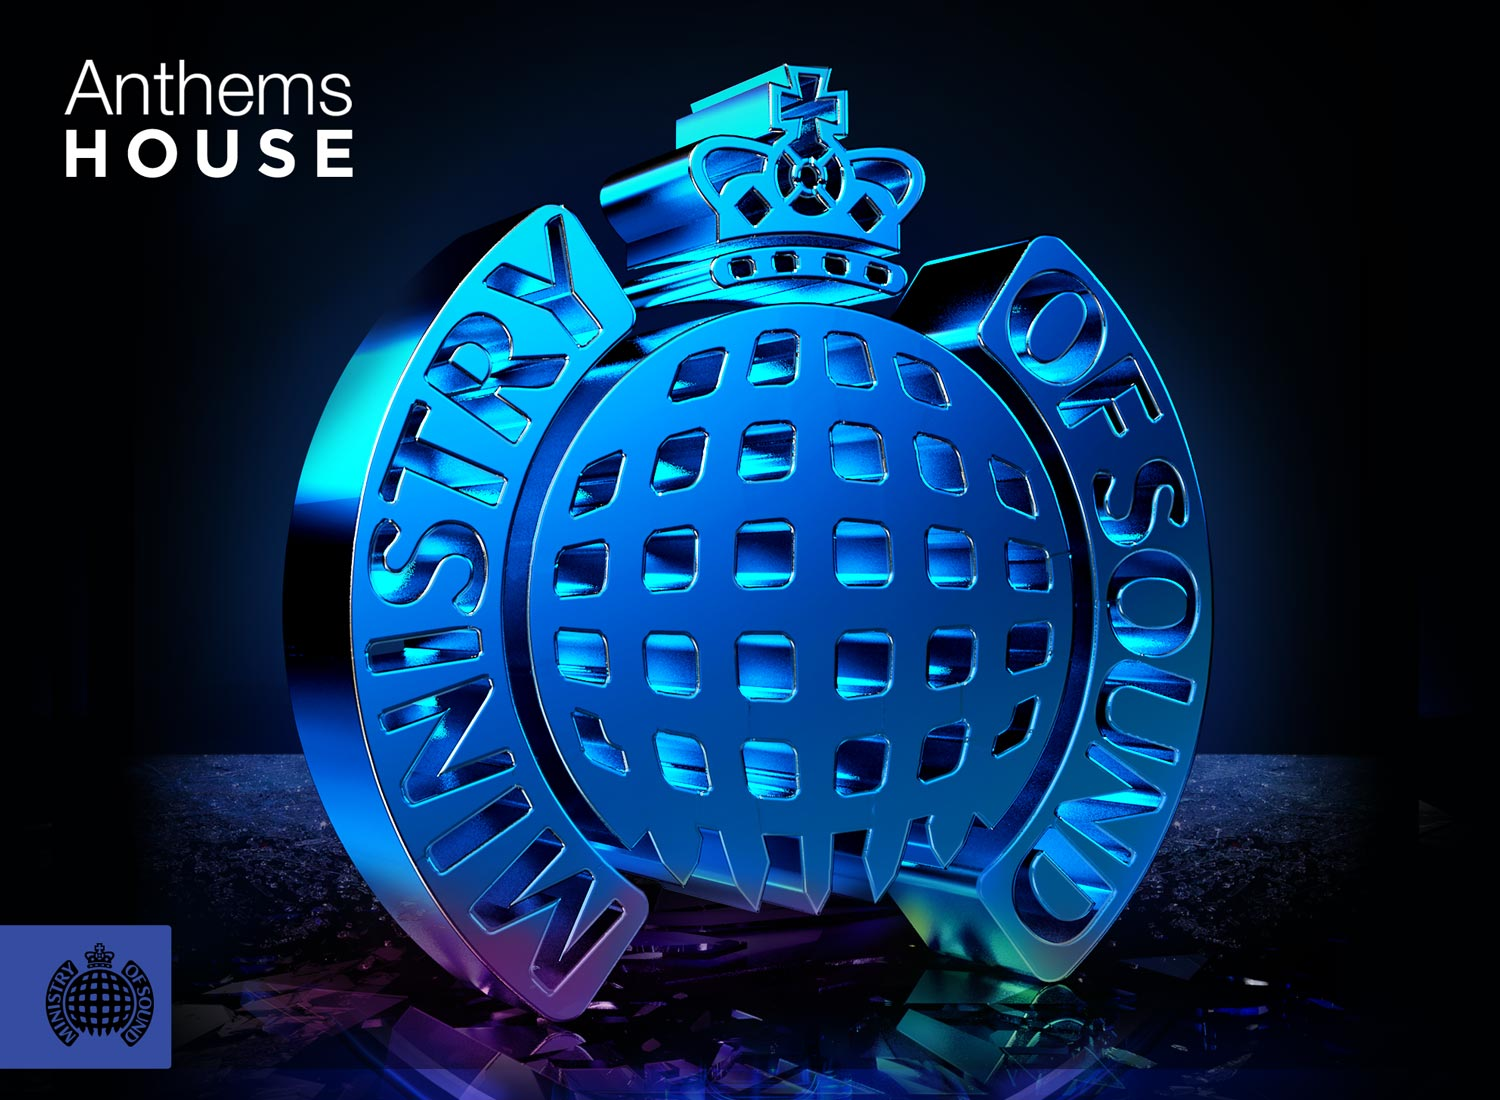 Bespoke design, 3D, ministry of sound, MoS